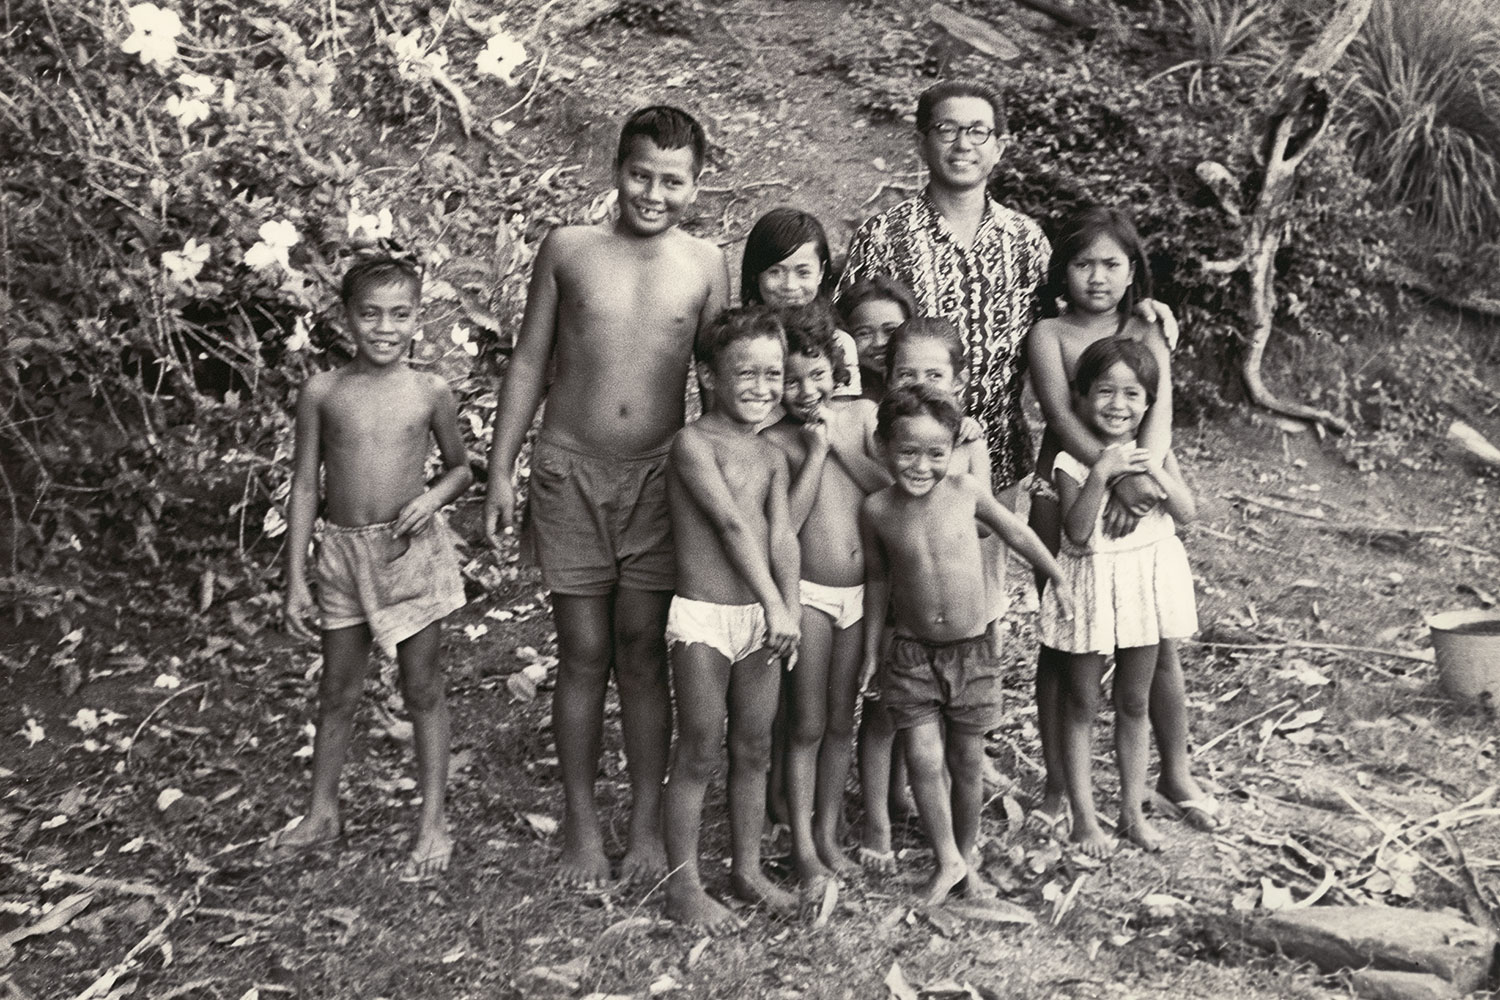 Black and white photo of a group of kids smiling for the camera.